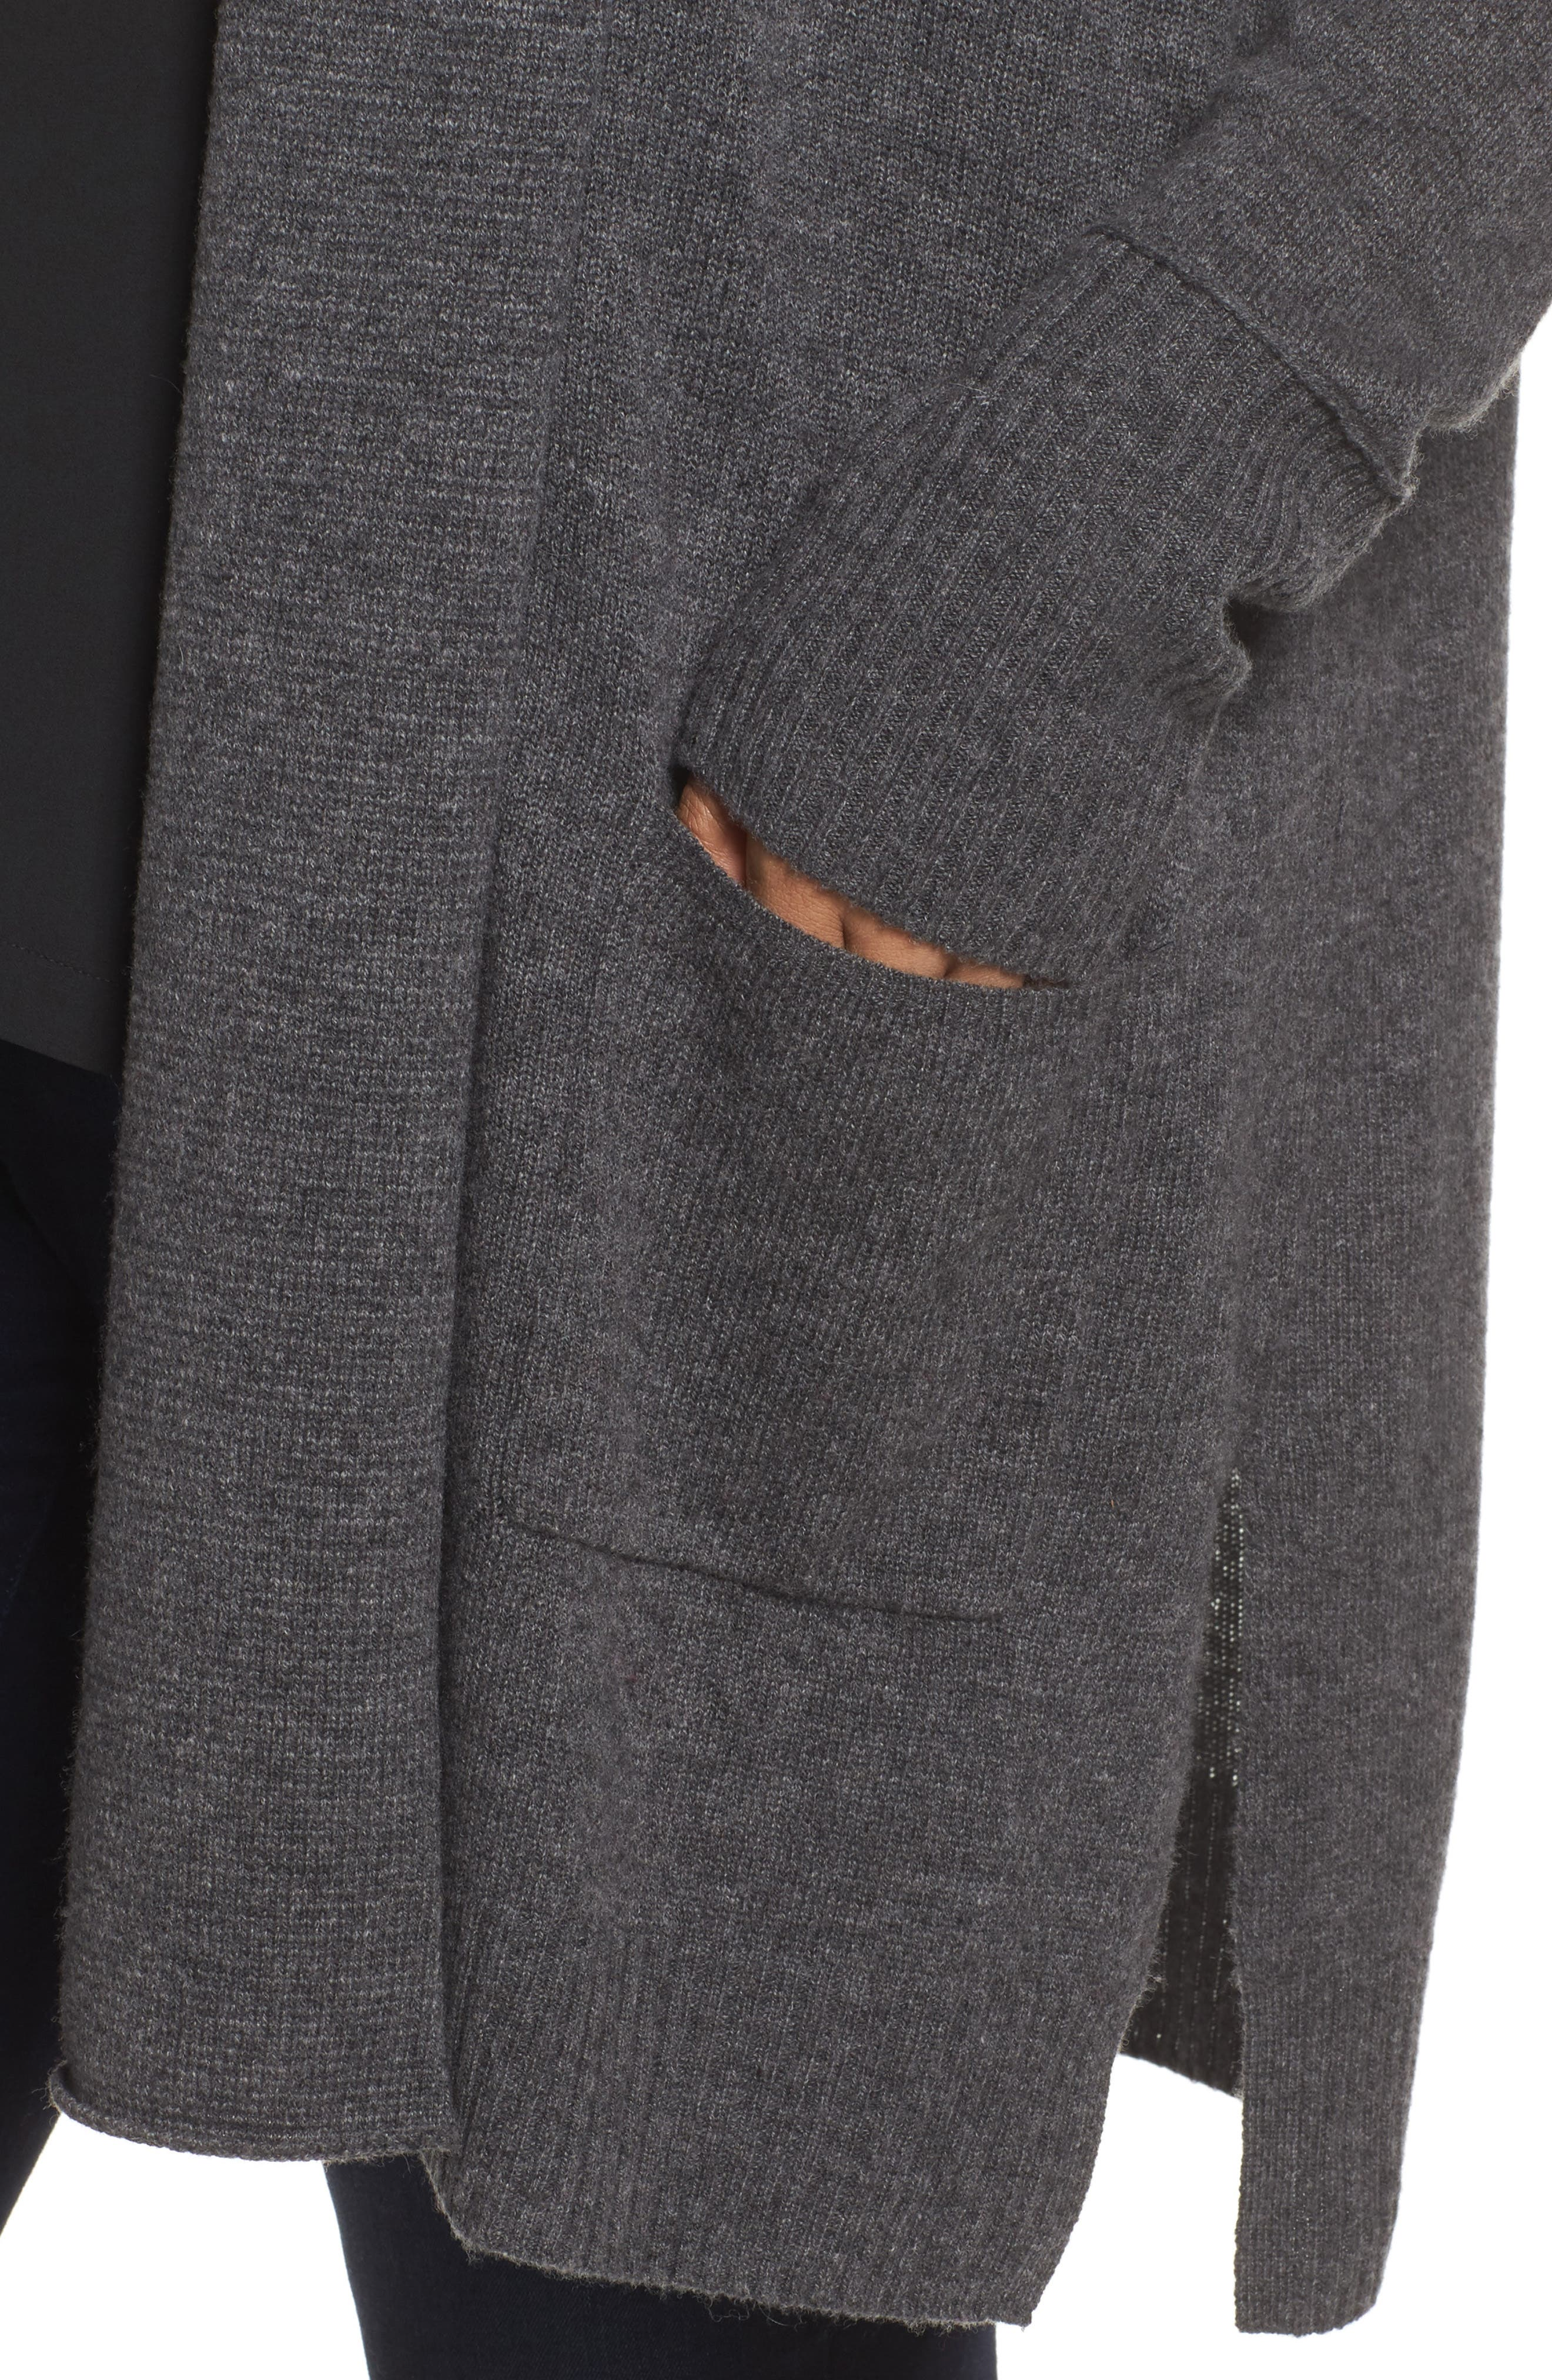 Pocket Cardigan,                             Alternate thumbnail 4, color,                             Grey Charcoal Heather